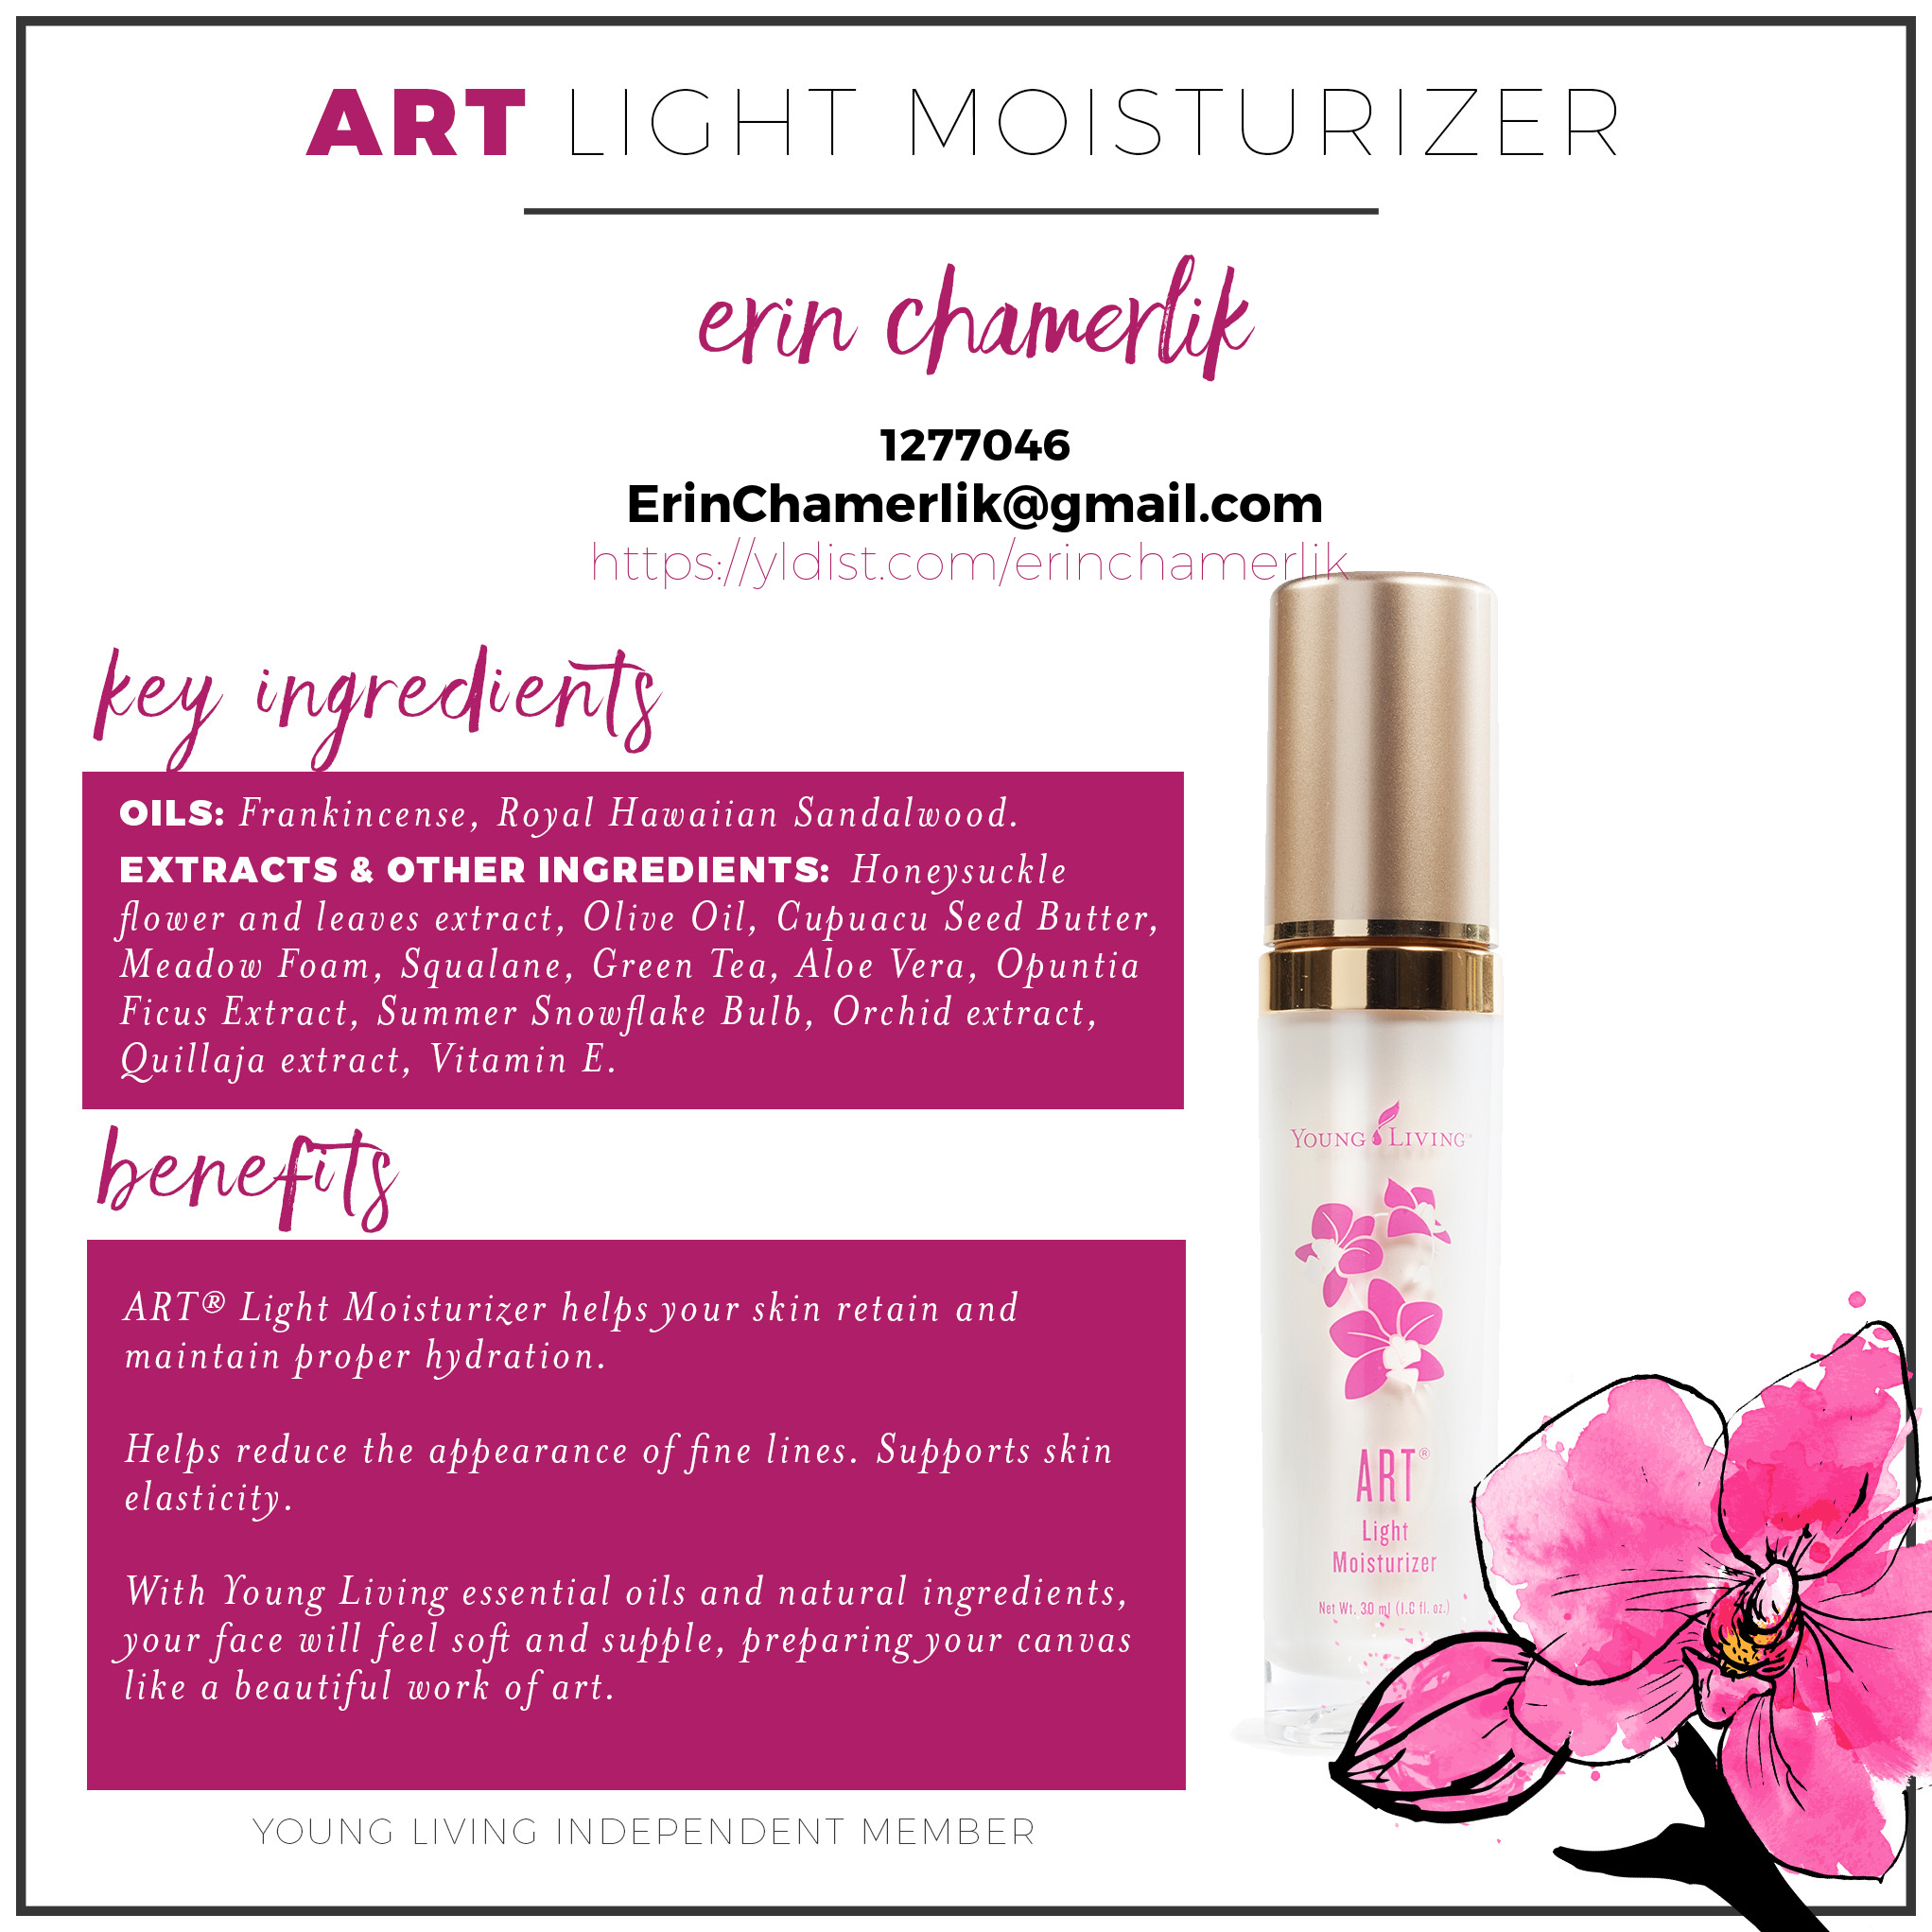 13-art-light-moisturizer